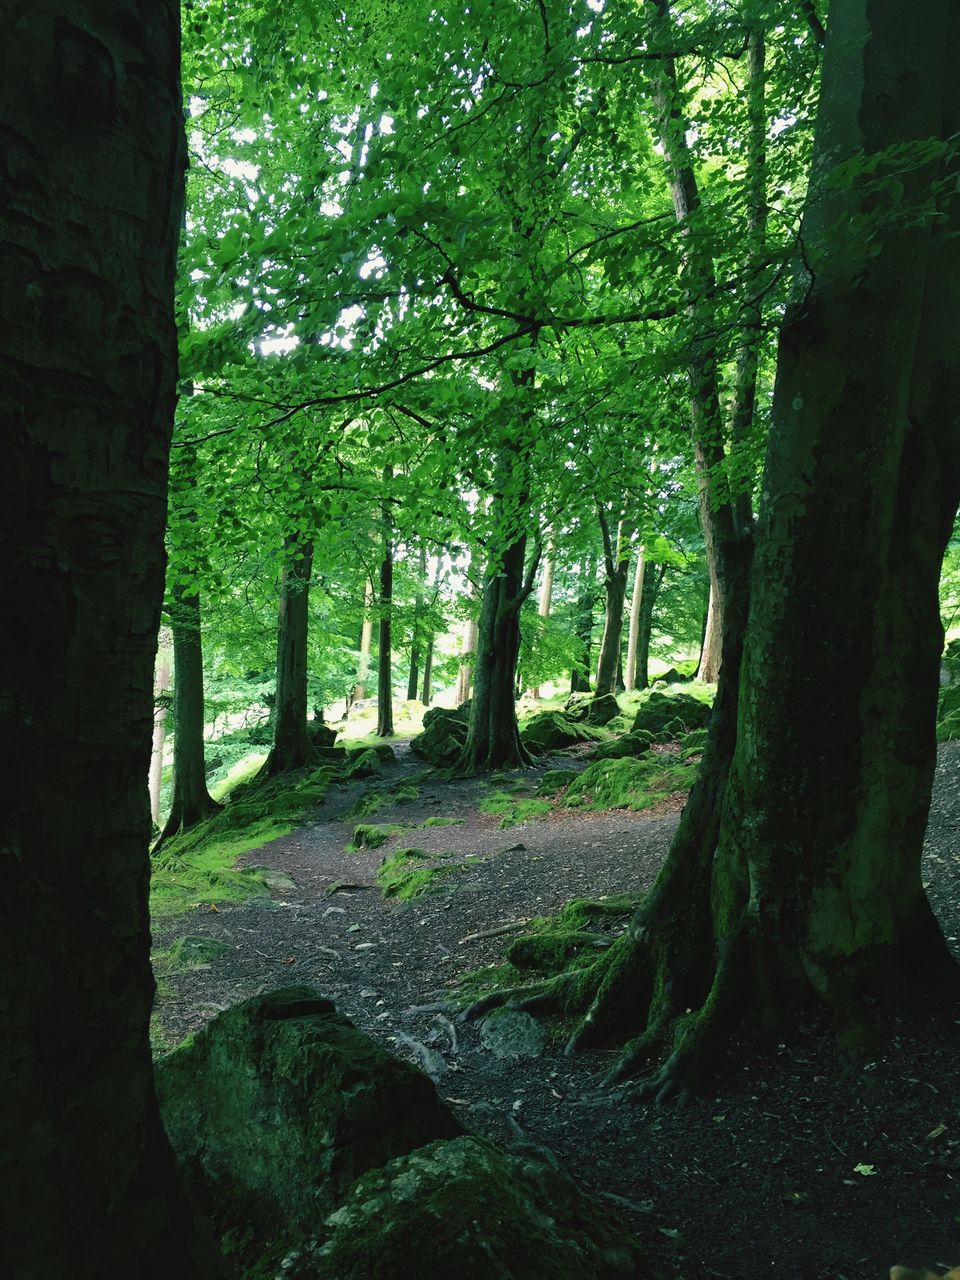 nature, tree, forest, tranquility, beauty in nature, no people, day, growth, outdoors